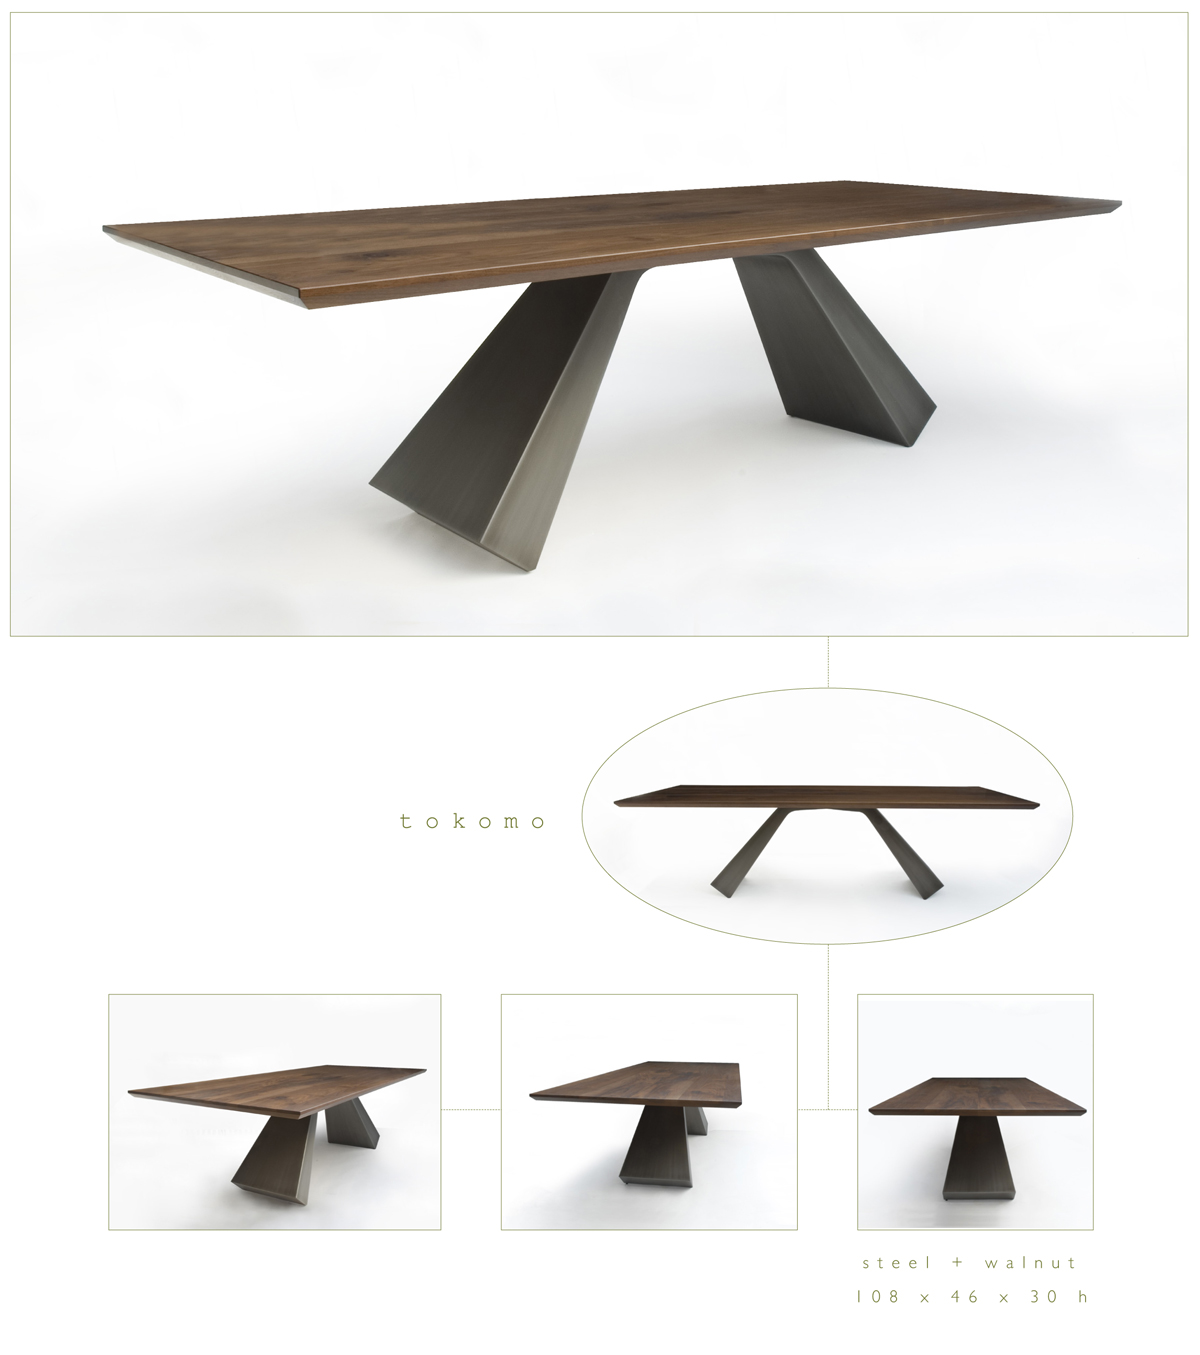 Tokomo is a contemporary dining table made out of steel and walnut measuring 108 x 46 x 30 inches made by Chad Manley Design.